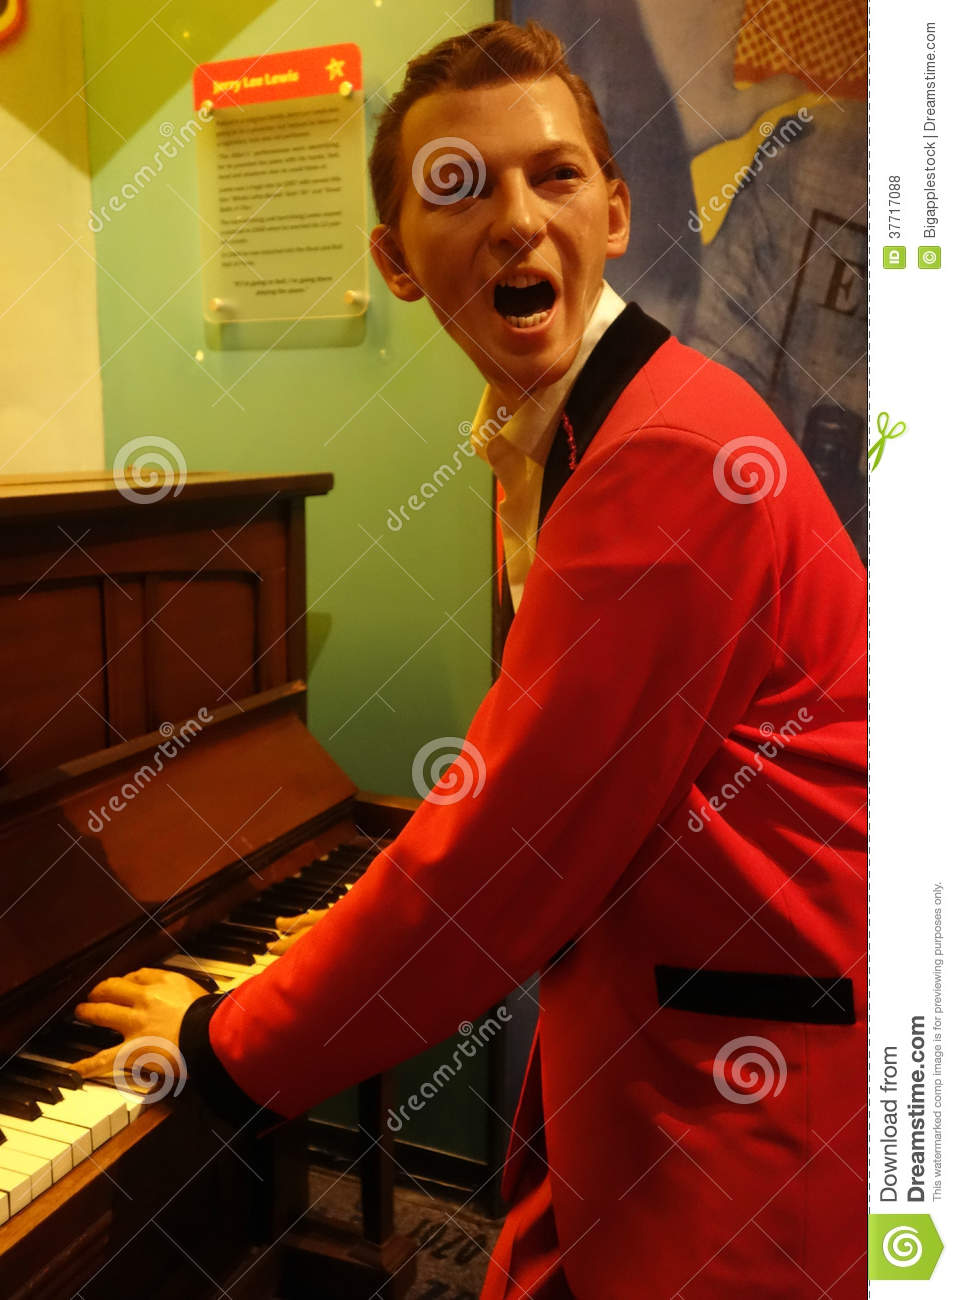 Jerry Lee Lewis Wax Figure Editorial Stock Photo  Image 37717088